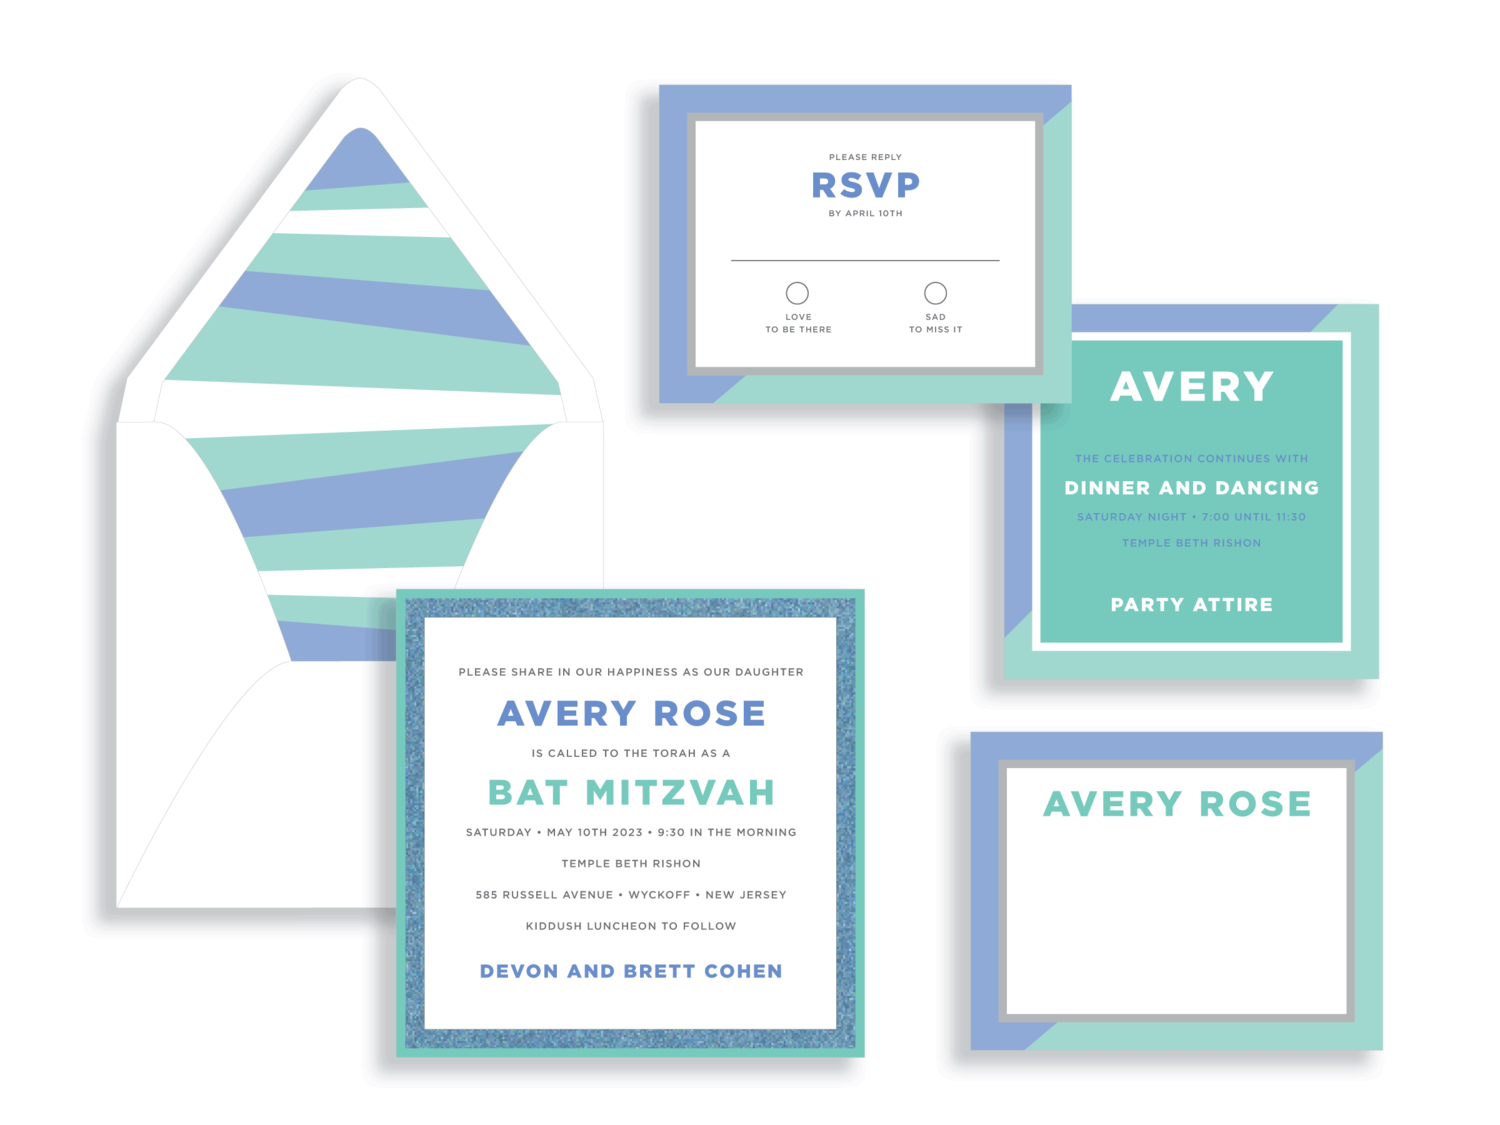 Avery Rose bat mitzva invitation in blue and mint.